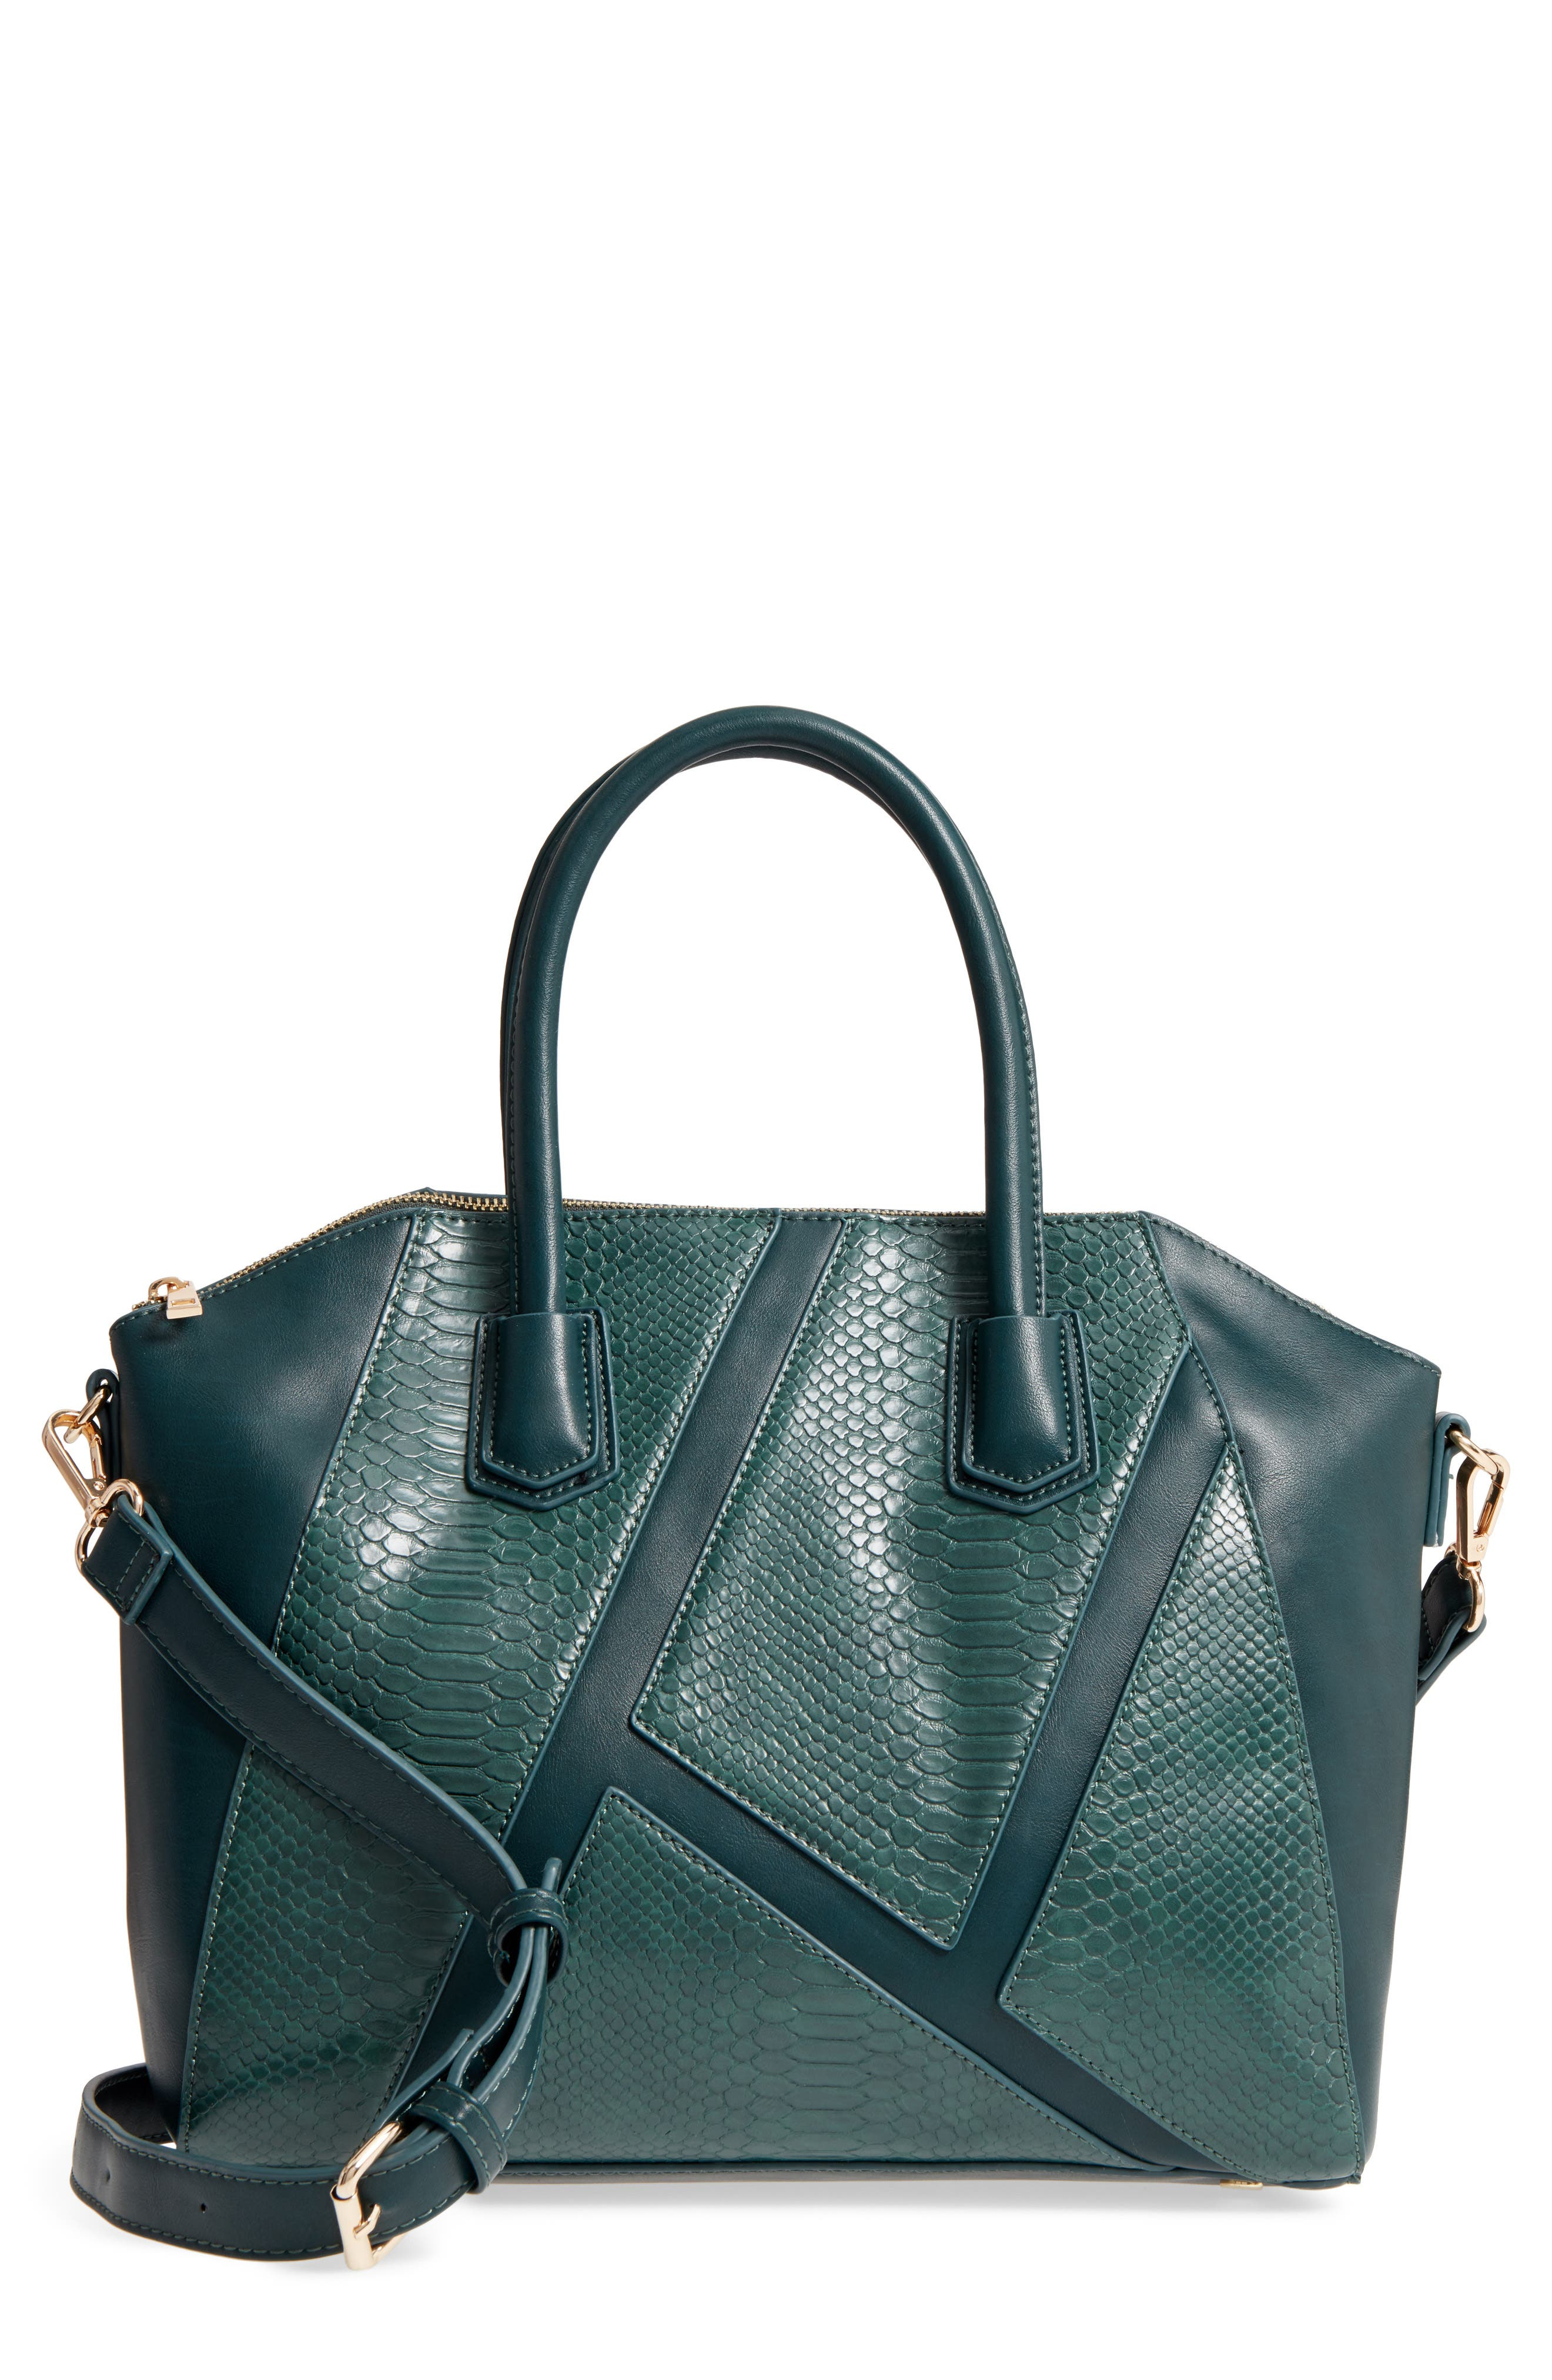 Chase Faux Leather Satchel,                             Main thumbnail 1, color,                             Emerald